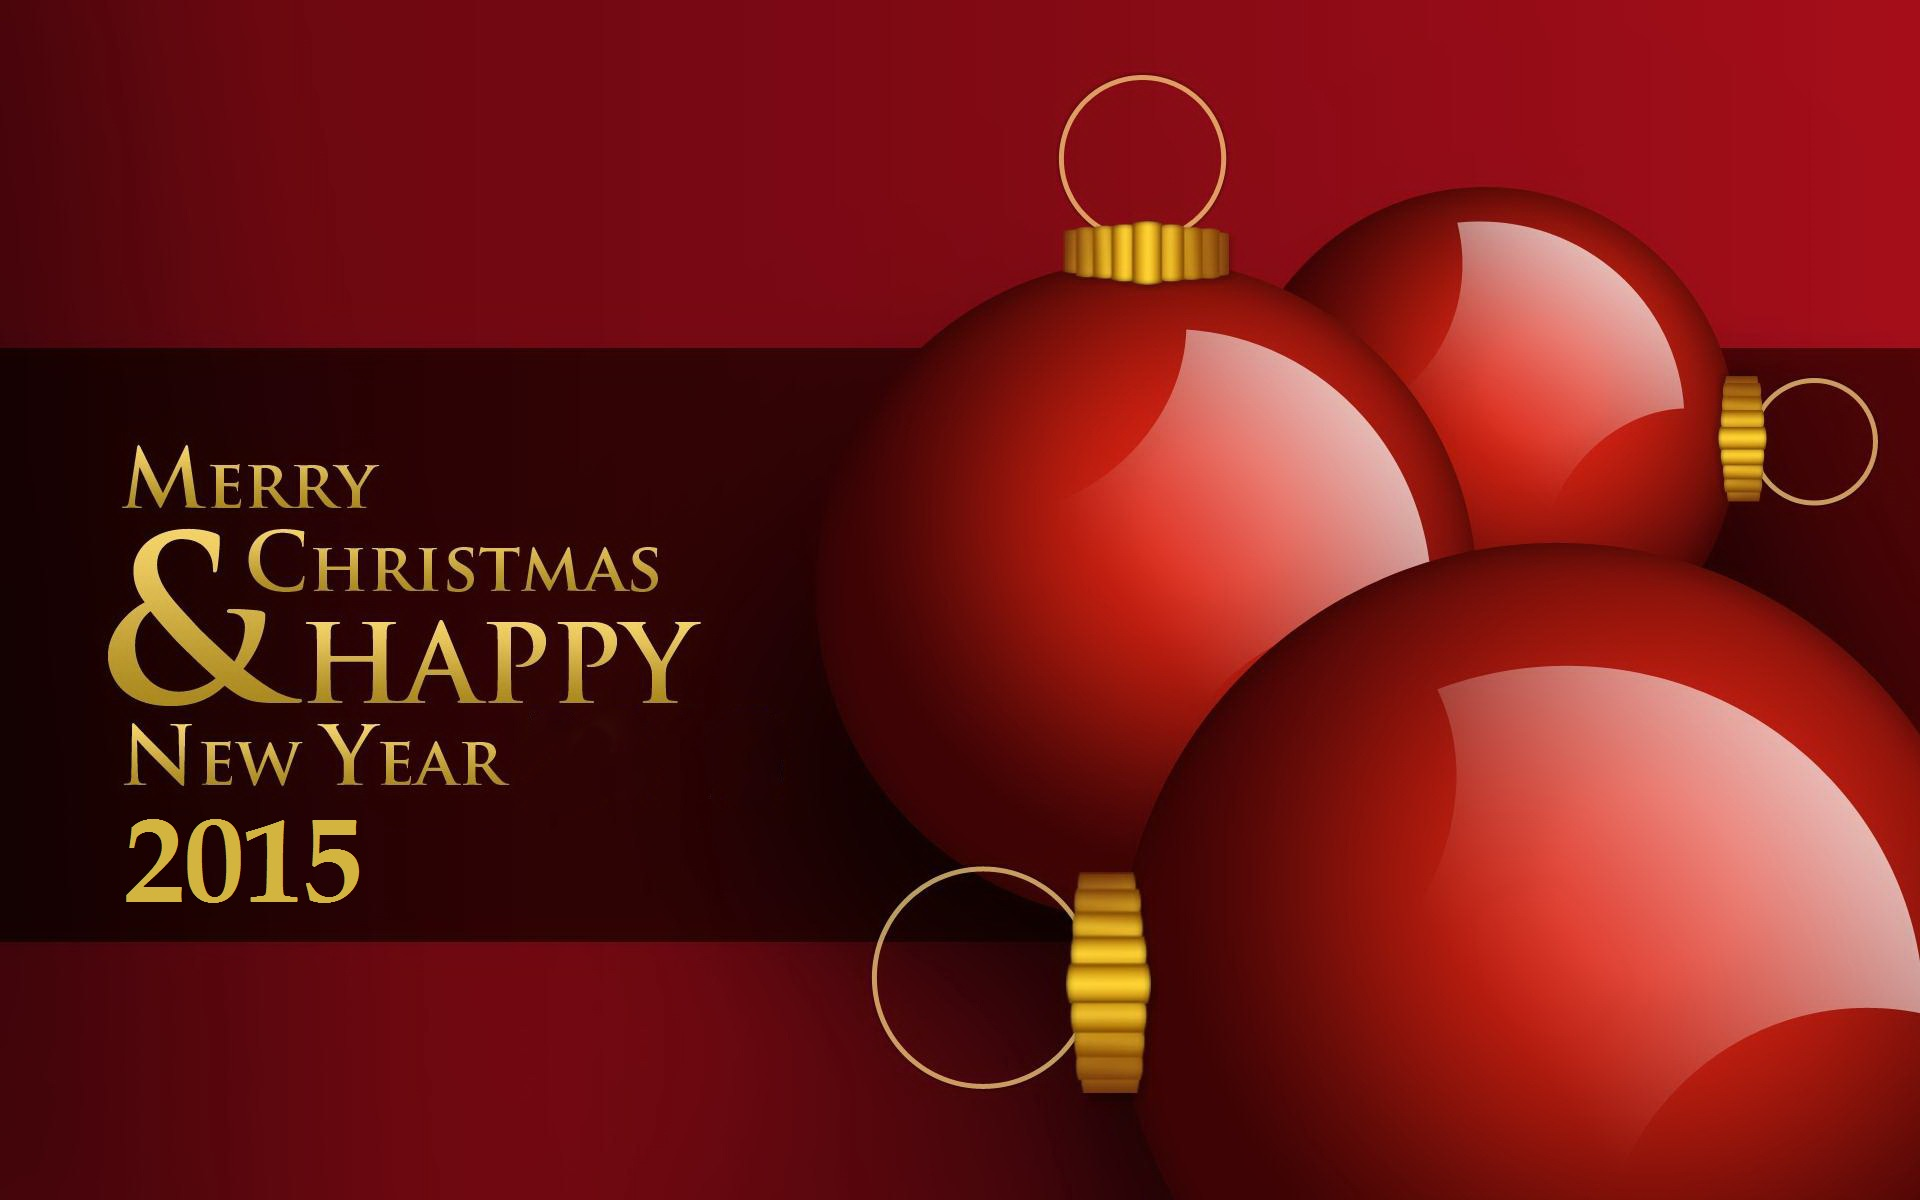 Merry Christmas and Happy New Year 2015 Wallpapers 1920x1200